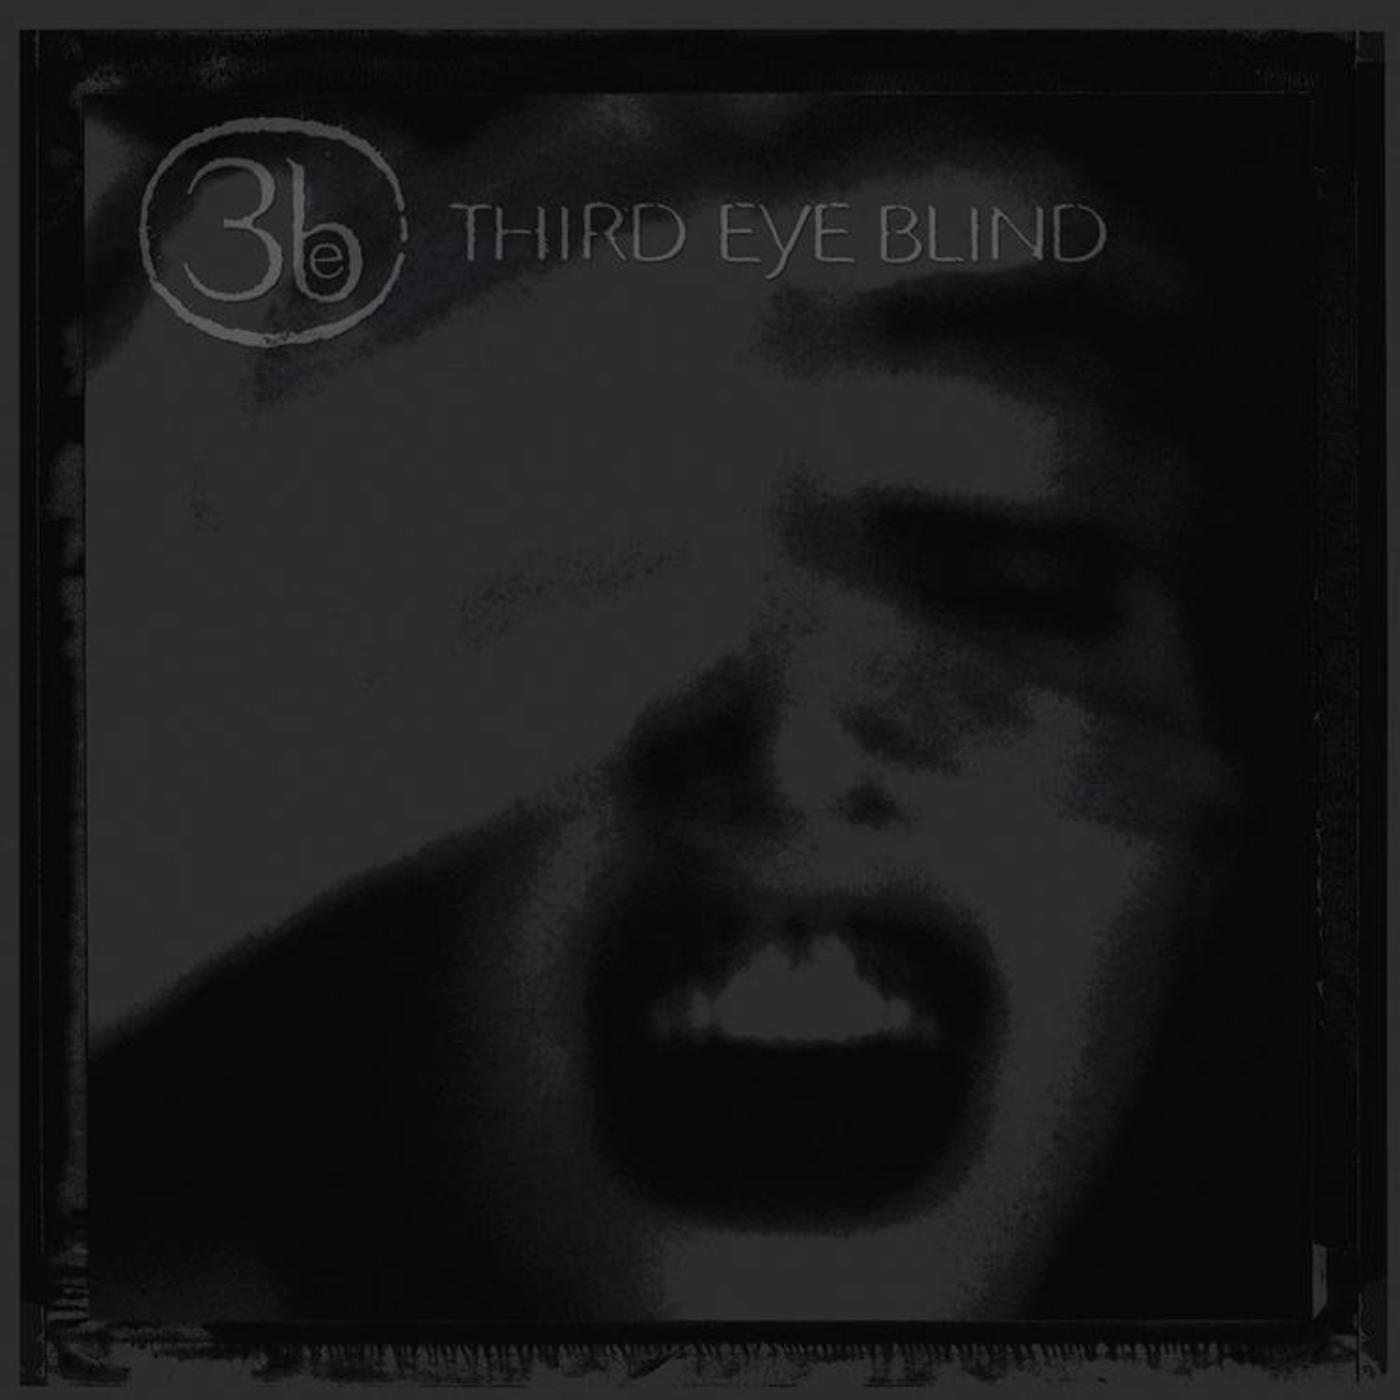 Third Eye Blind: 20th Anniversary Edition